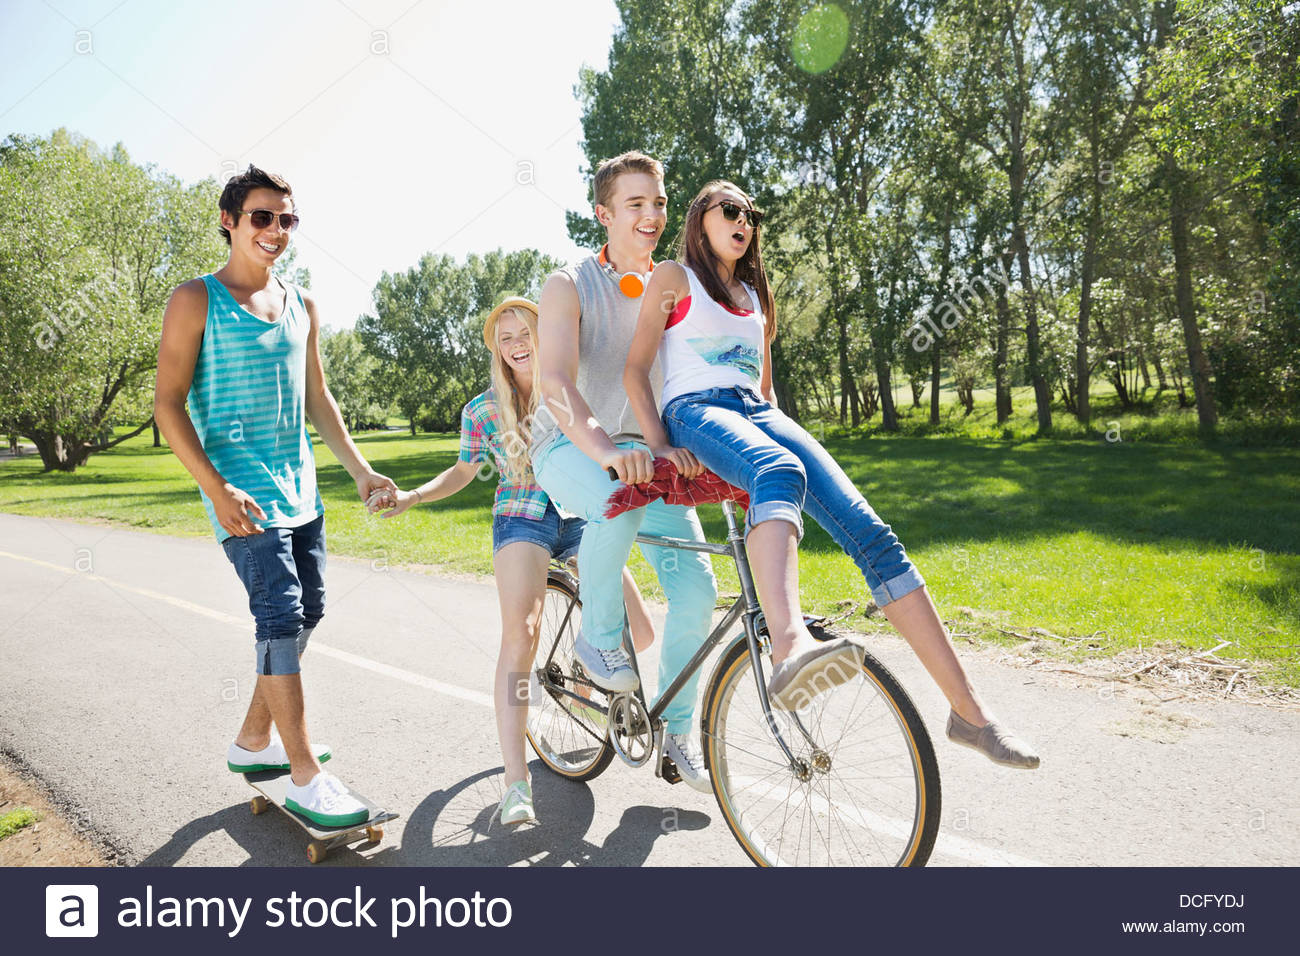 Teenagers hanging out in a park - Stock Image